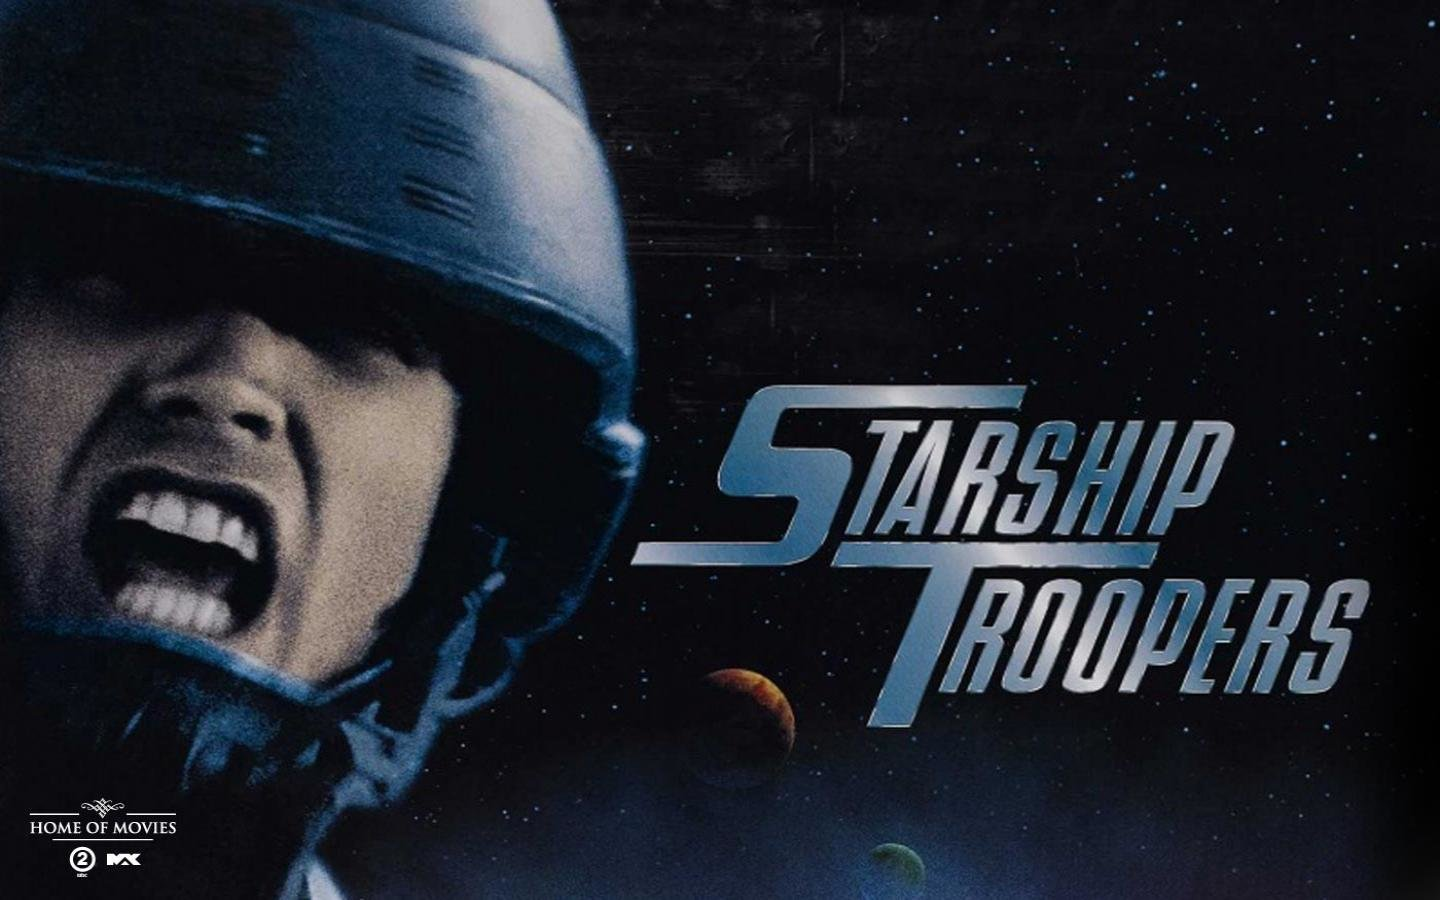 starship troopers wallpapers 1440x900 desktop backgrounds